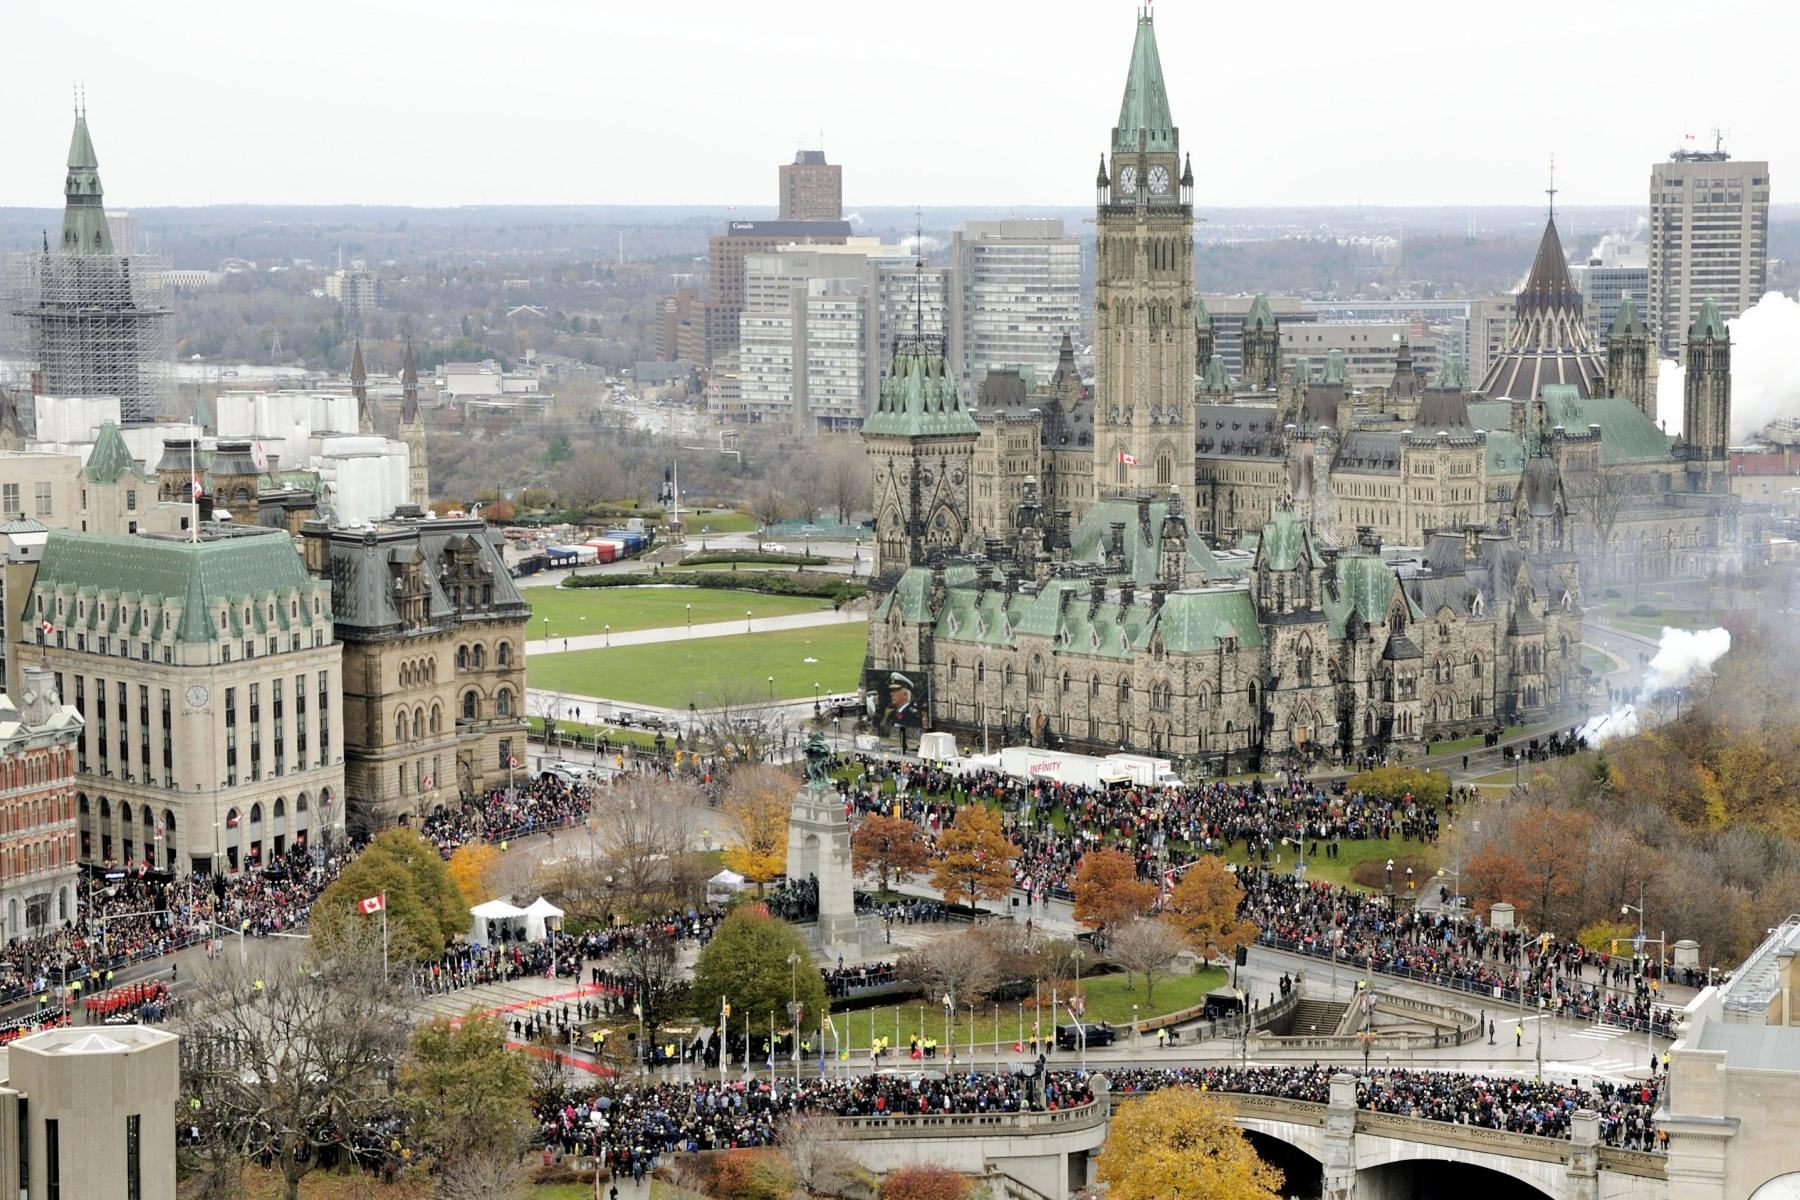 On November 11, 2013, thousands of people gathered in the nation's capital to pay tribute to fallen Canadian soldiers.